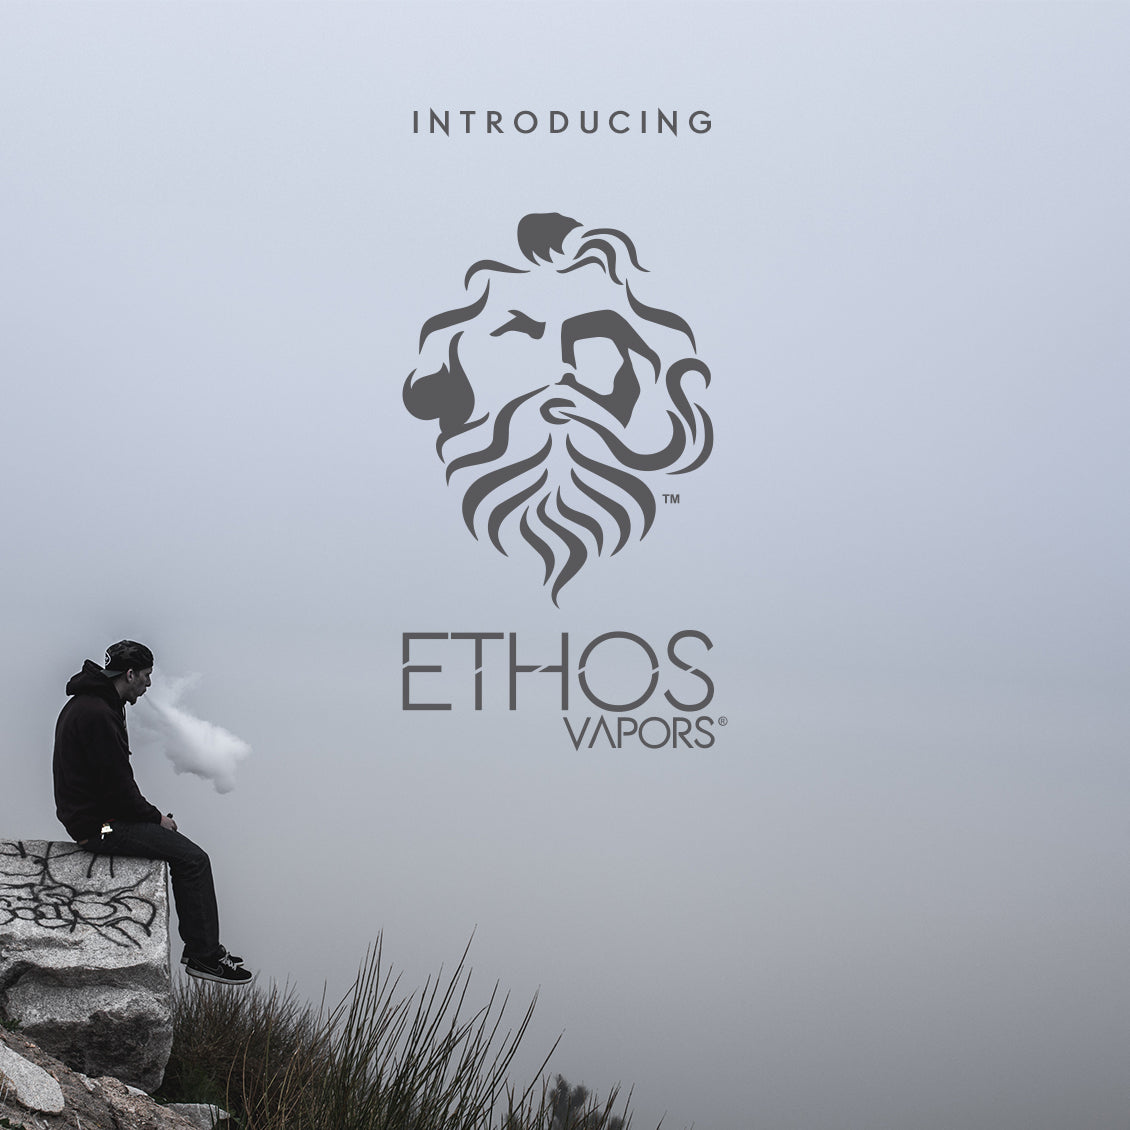 Introducing Ethos Vapors to Johnson Creek